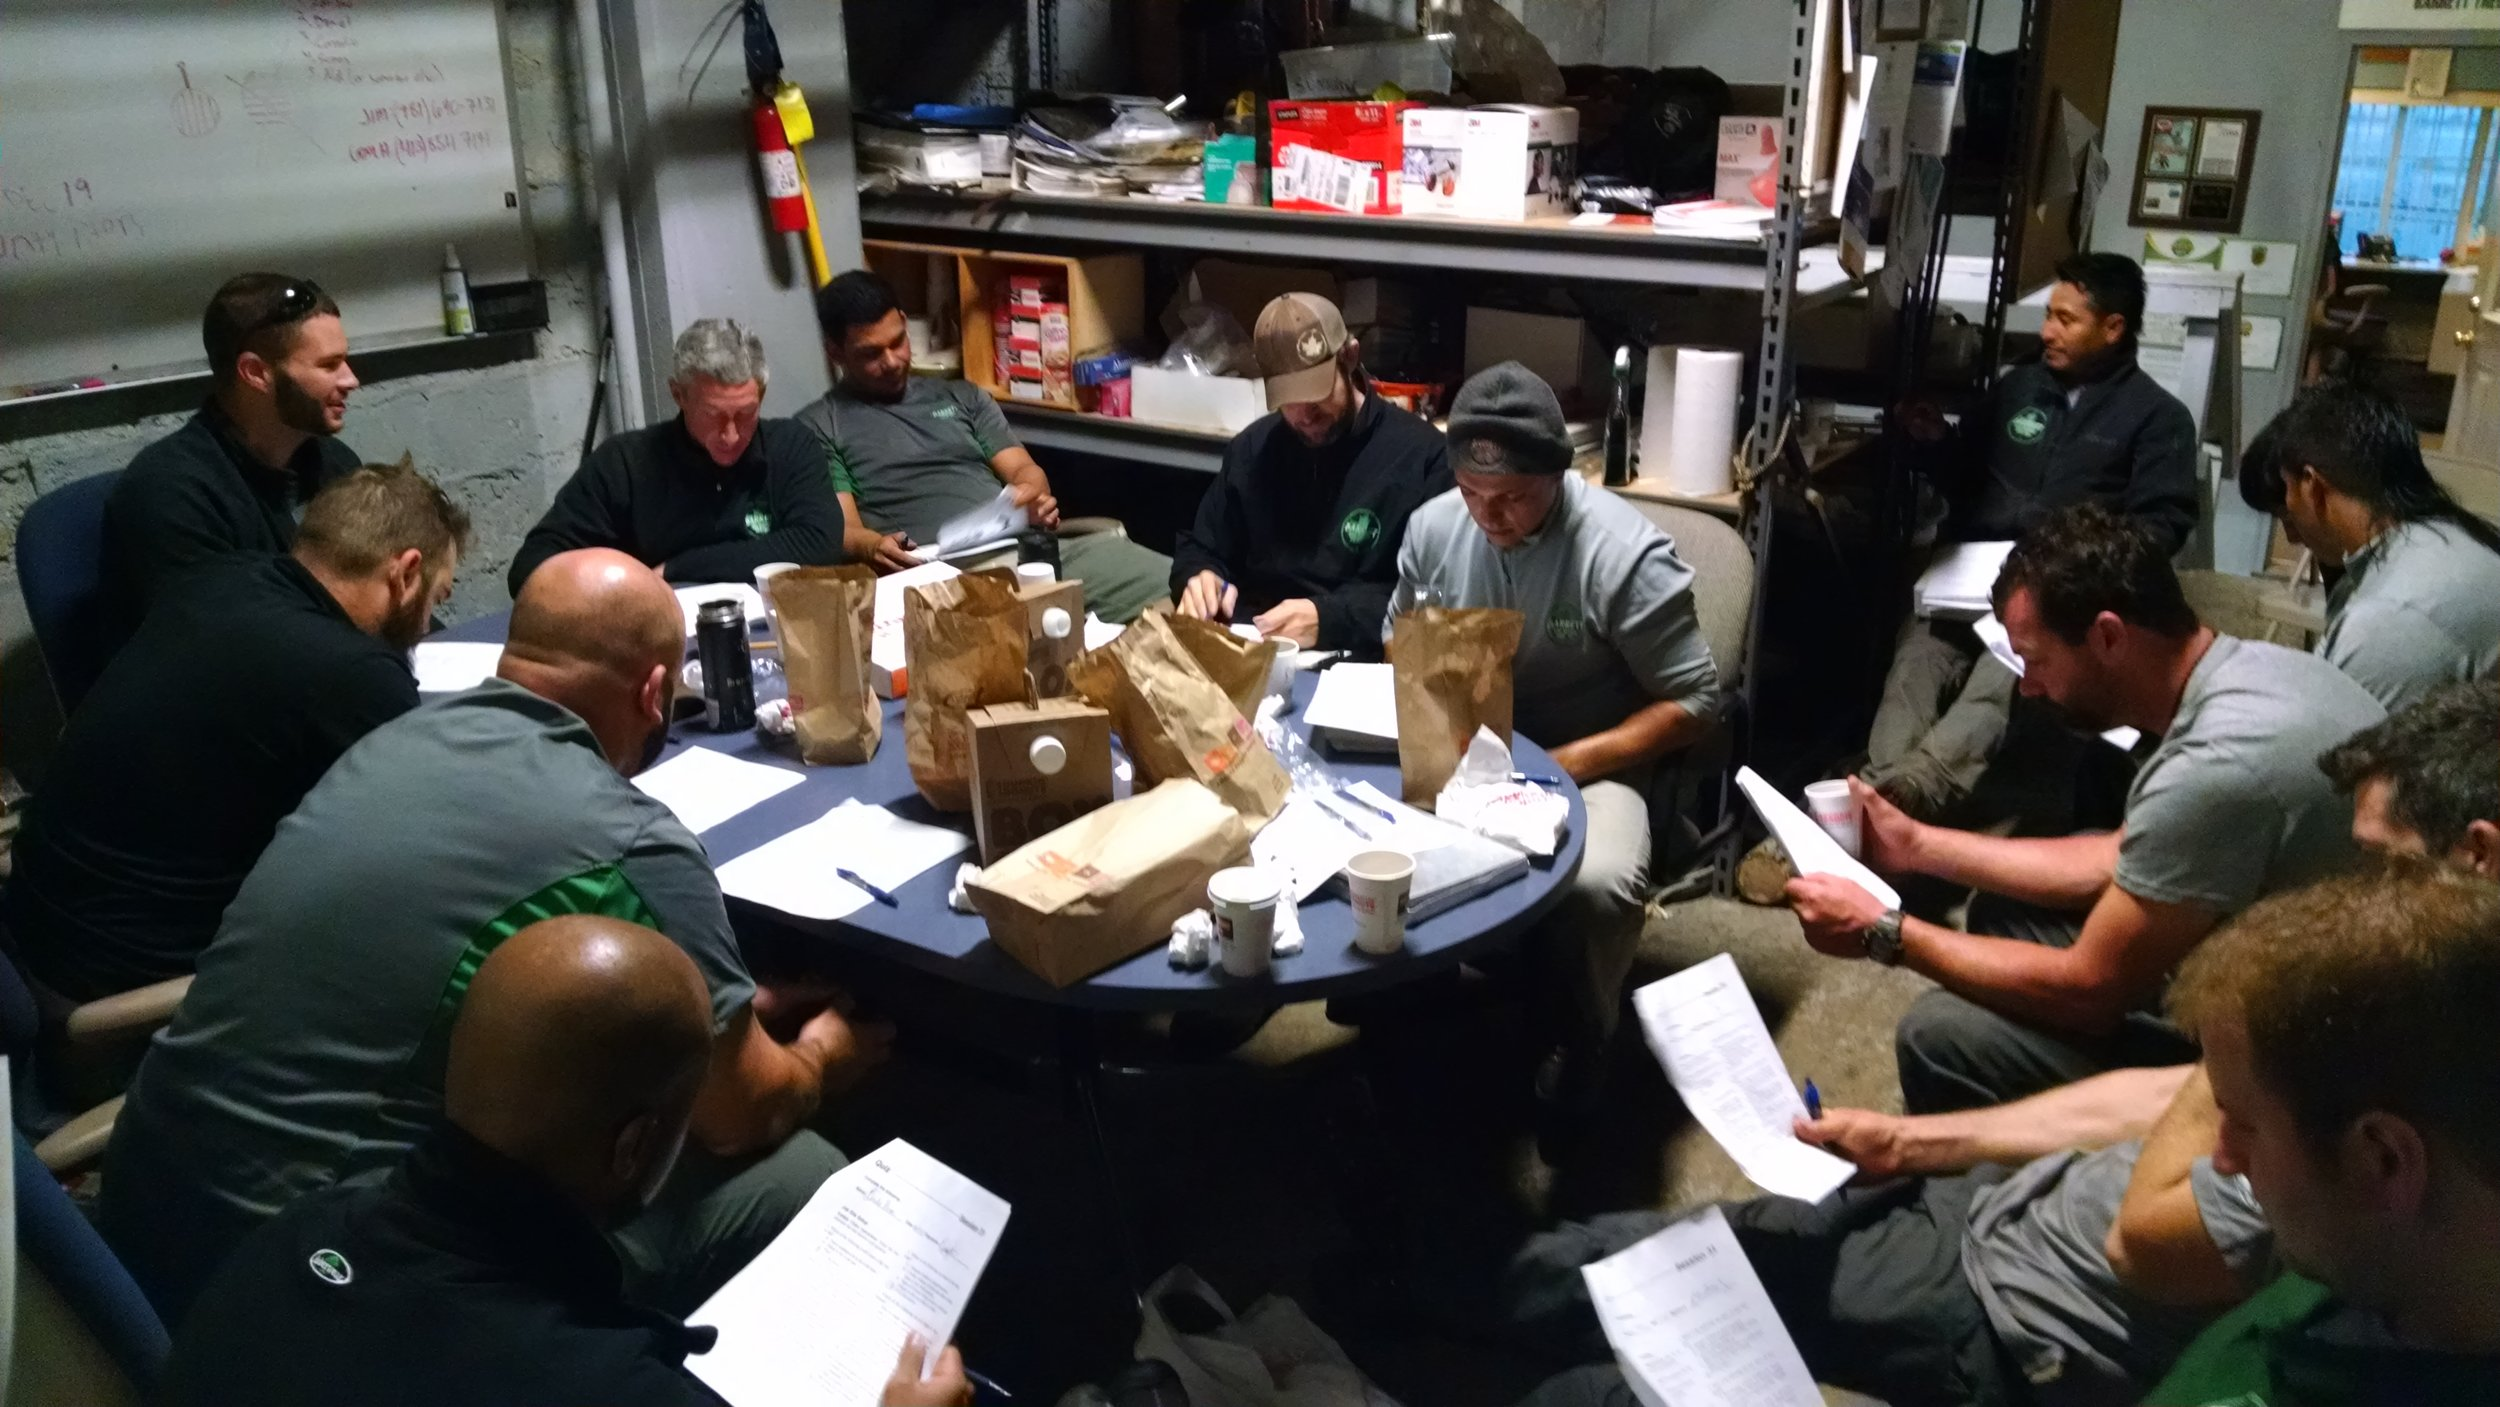 One of the ways BTSE reinforces our culture focused on safety is through weekly company wide safety meetings.